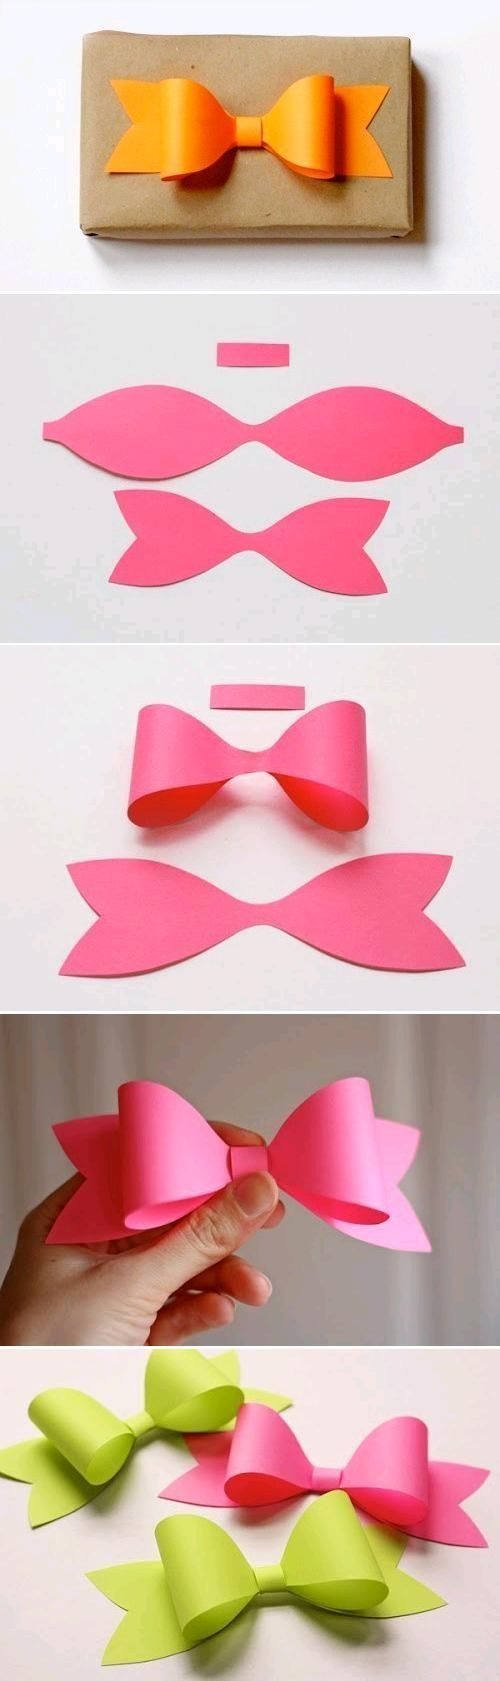 photo tutorial  how to make a paper bow  great idea for packages, hair ornament or handmade card  Pin It